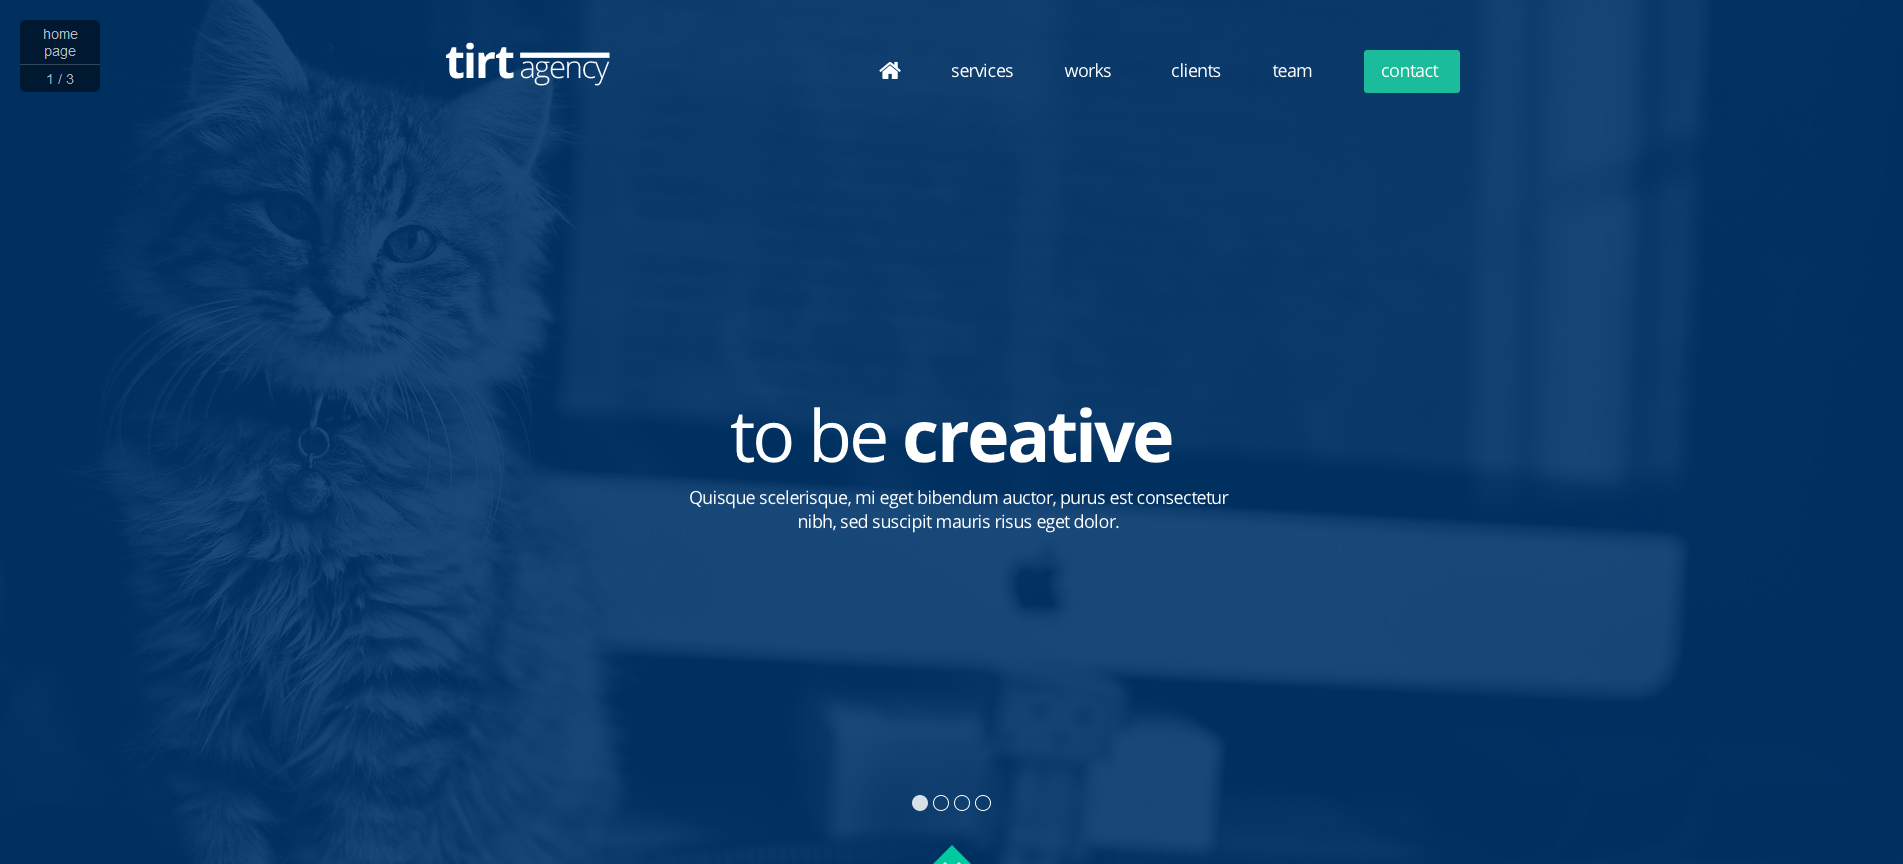 tirtAgency – One Page PSD Template